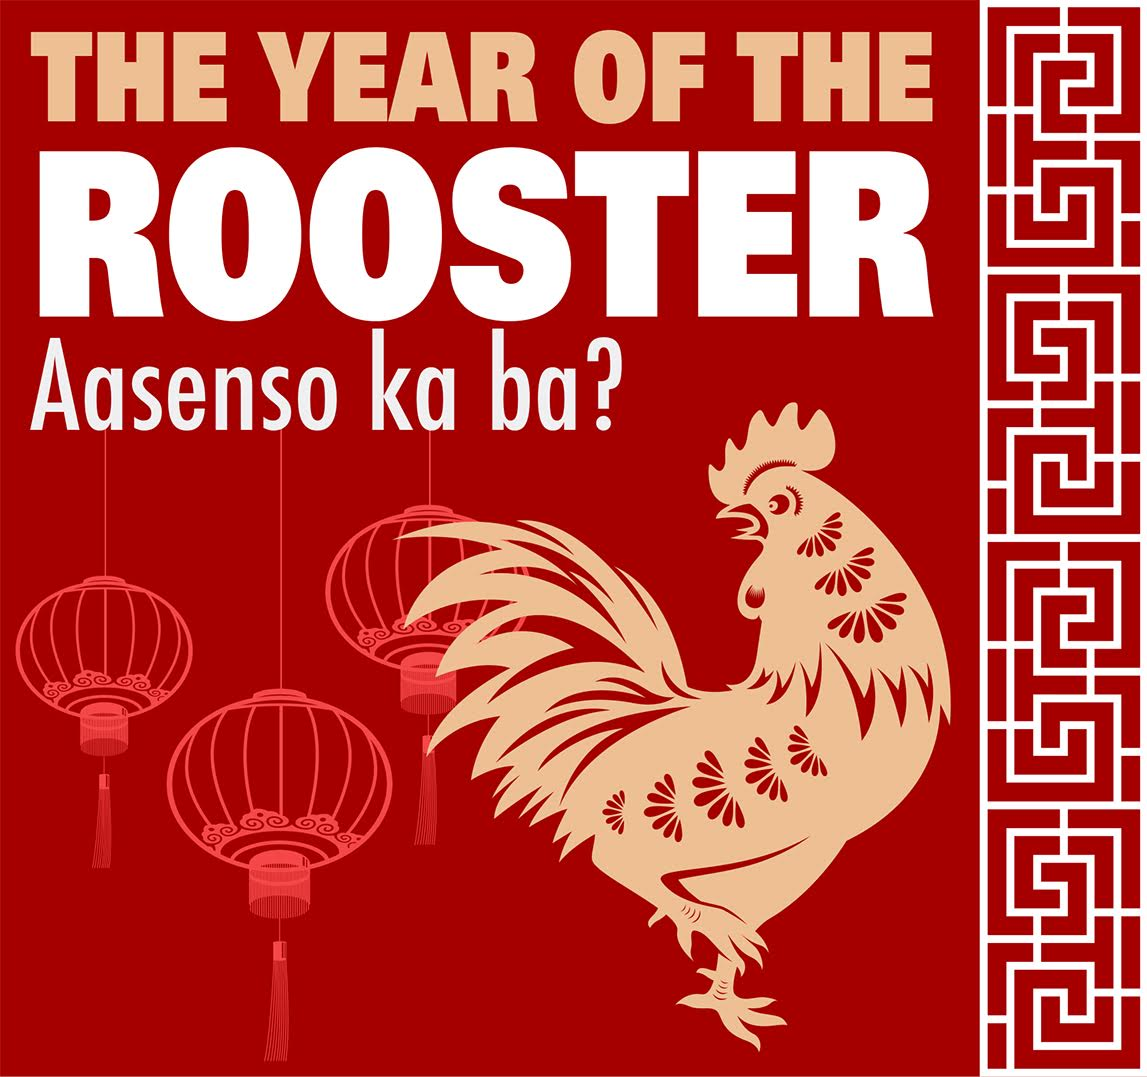 The Year of the Rooster: Aasenso ka ba?